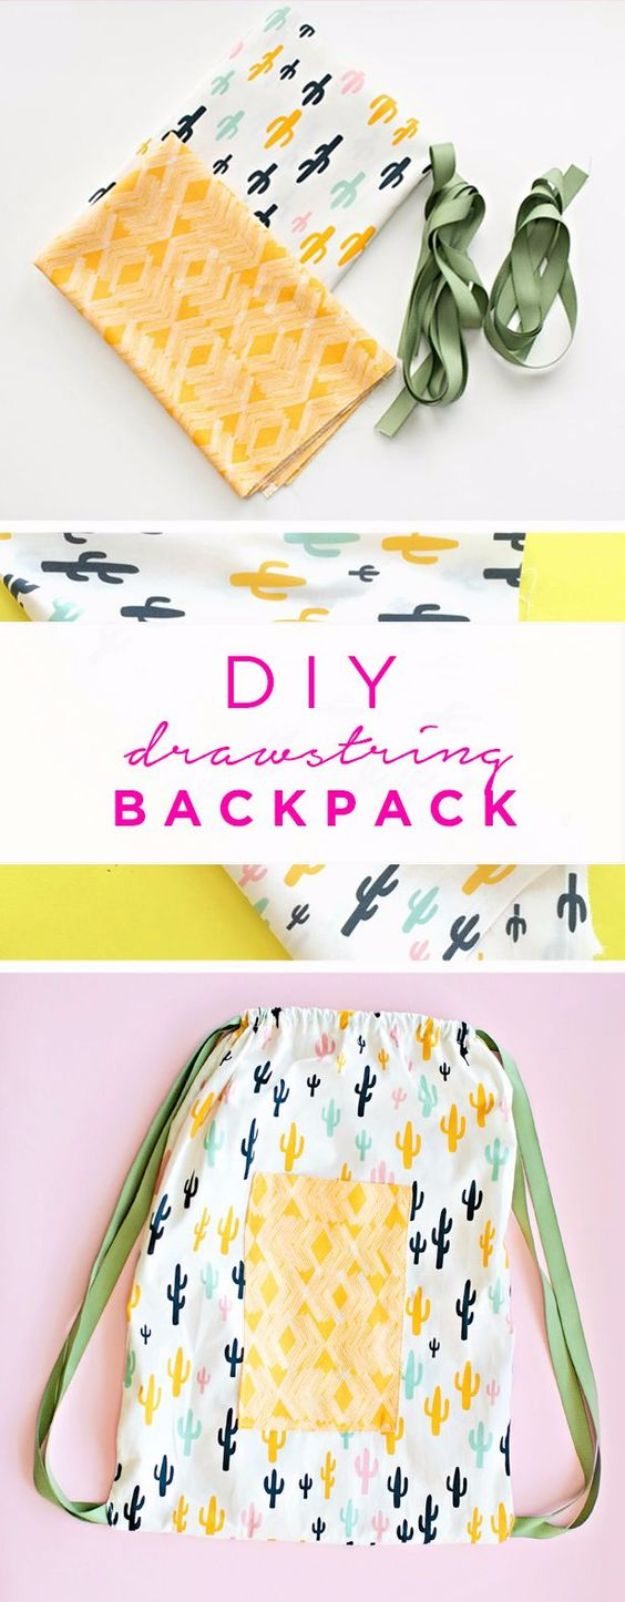 50 Best Back To School Diy Ideas Diy Projects For Teens